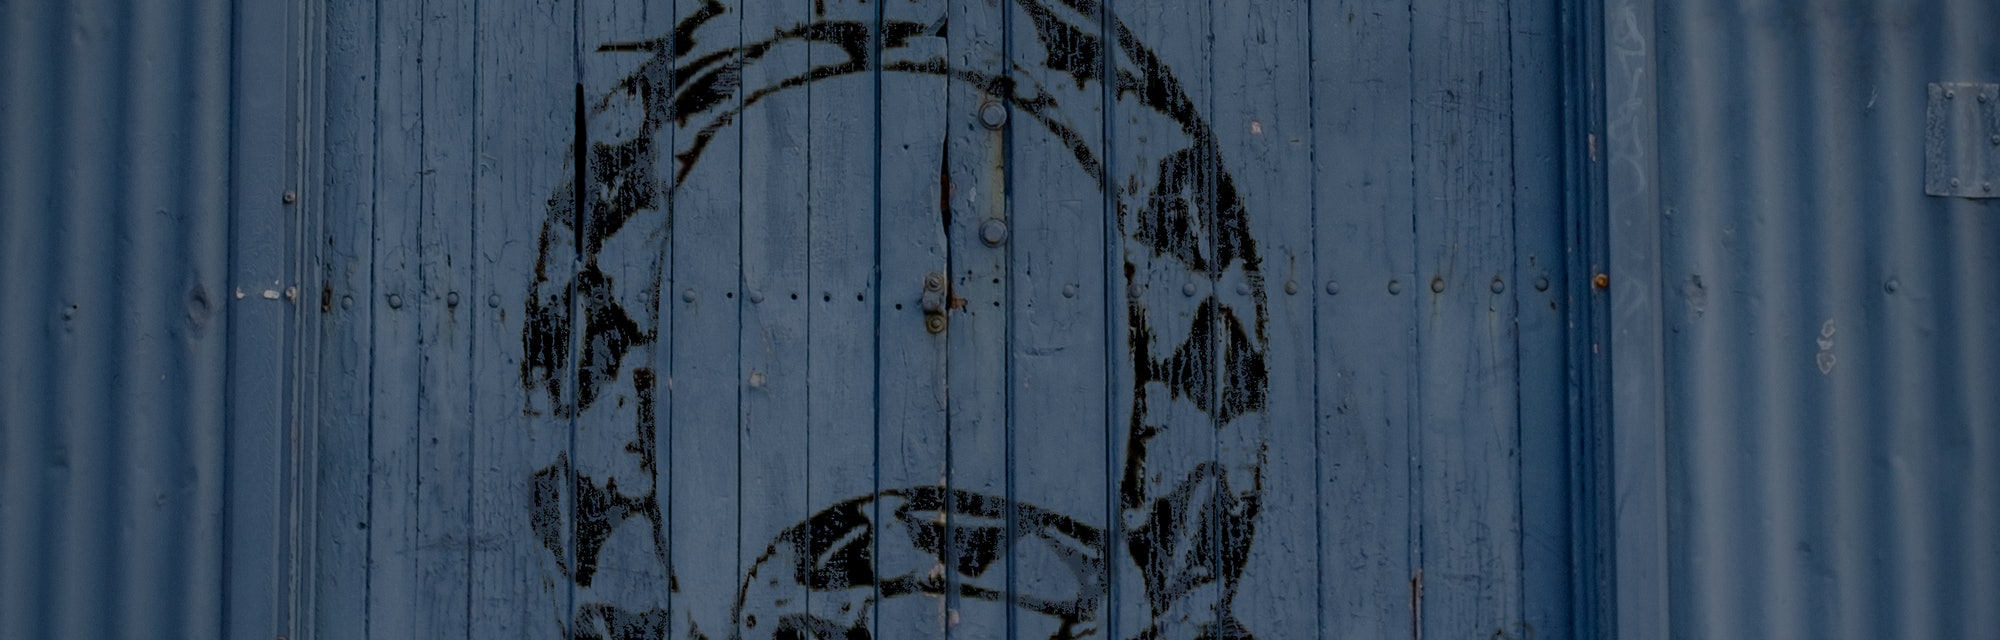 "Snake graffiti on old warehouse door which shows the conspiracy theory secret society QAnon's signature ""Q."""